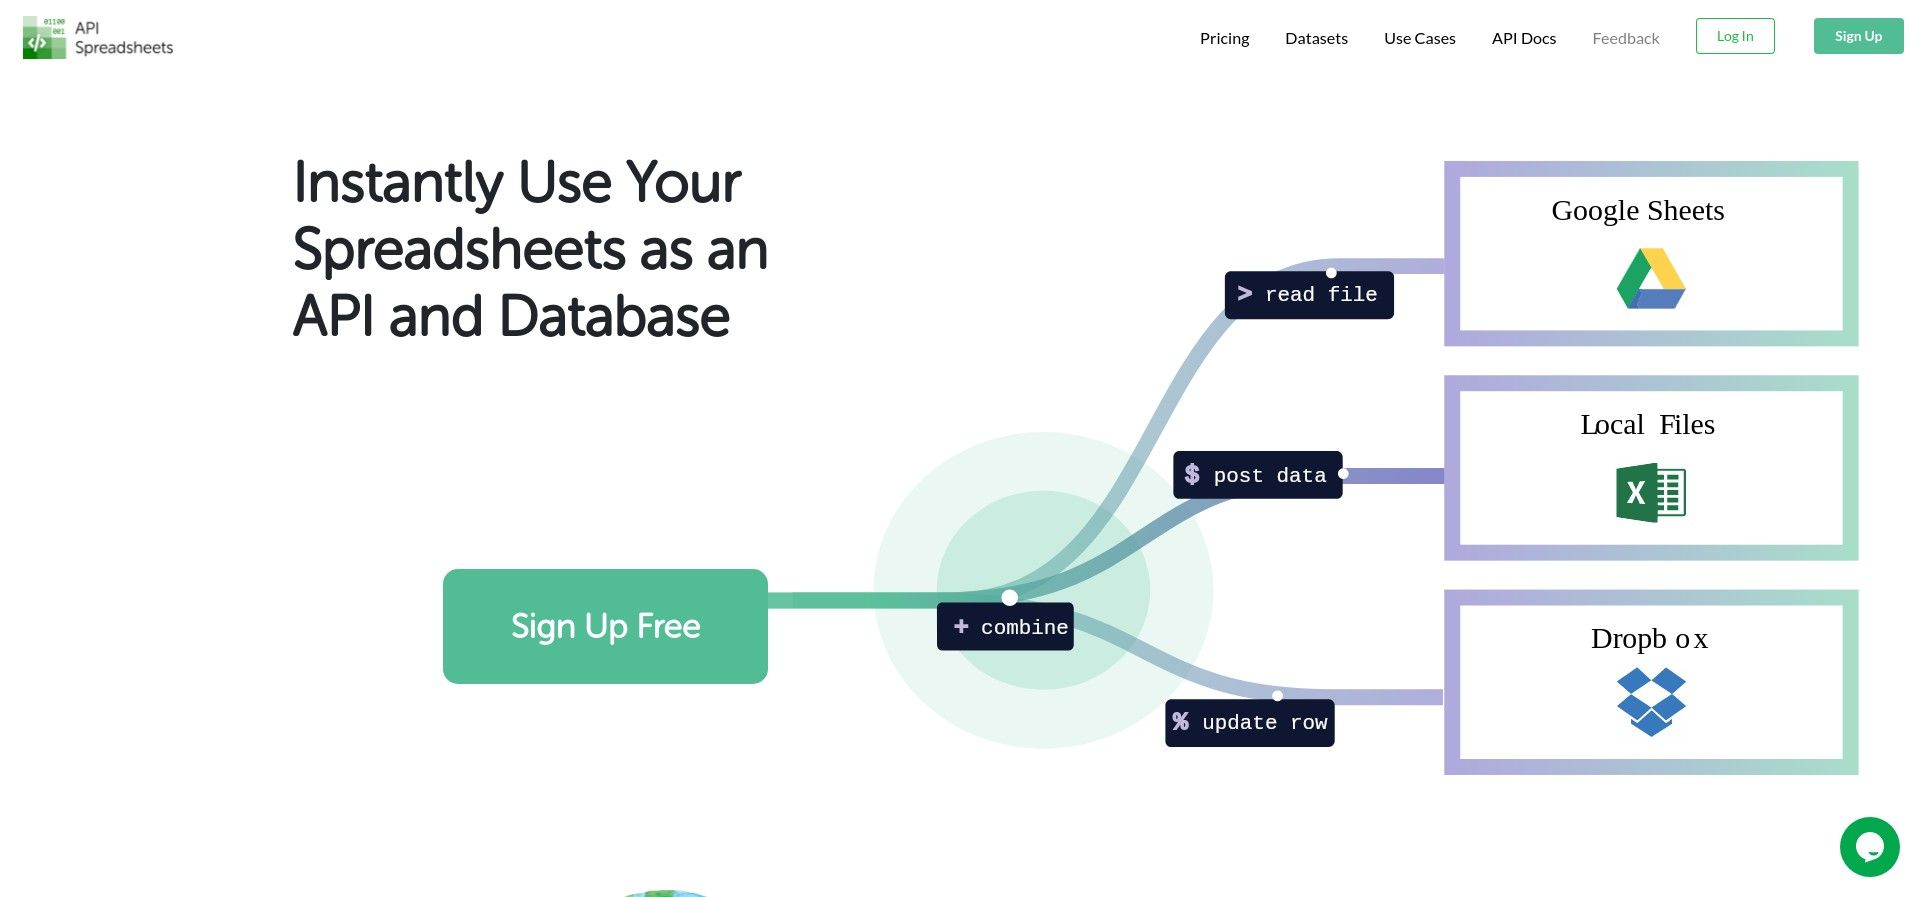 API Spreadsheets - Instantly use Your Spreadsheets as an API and Database